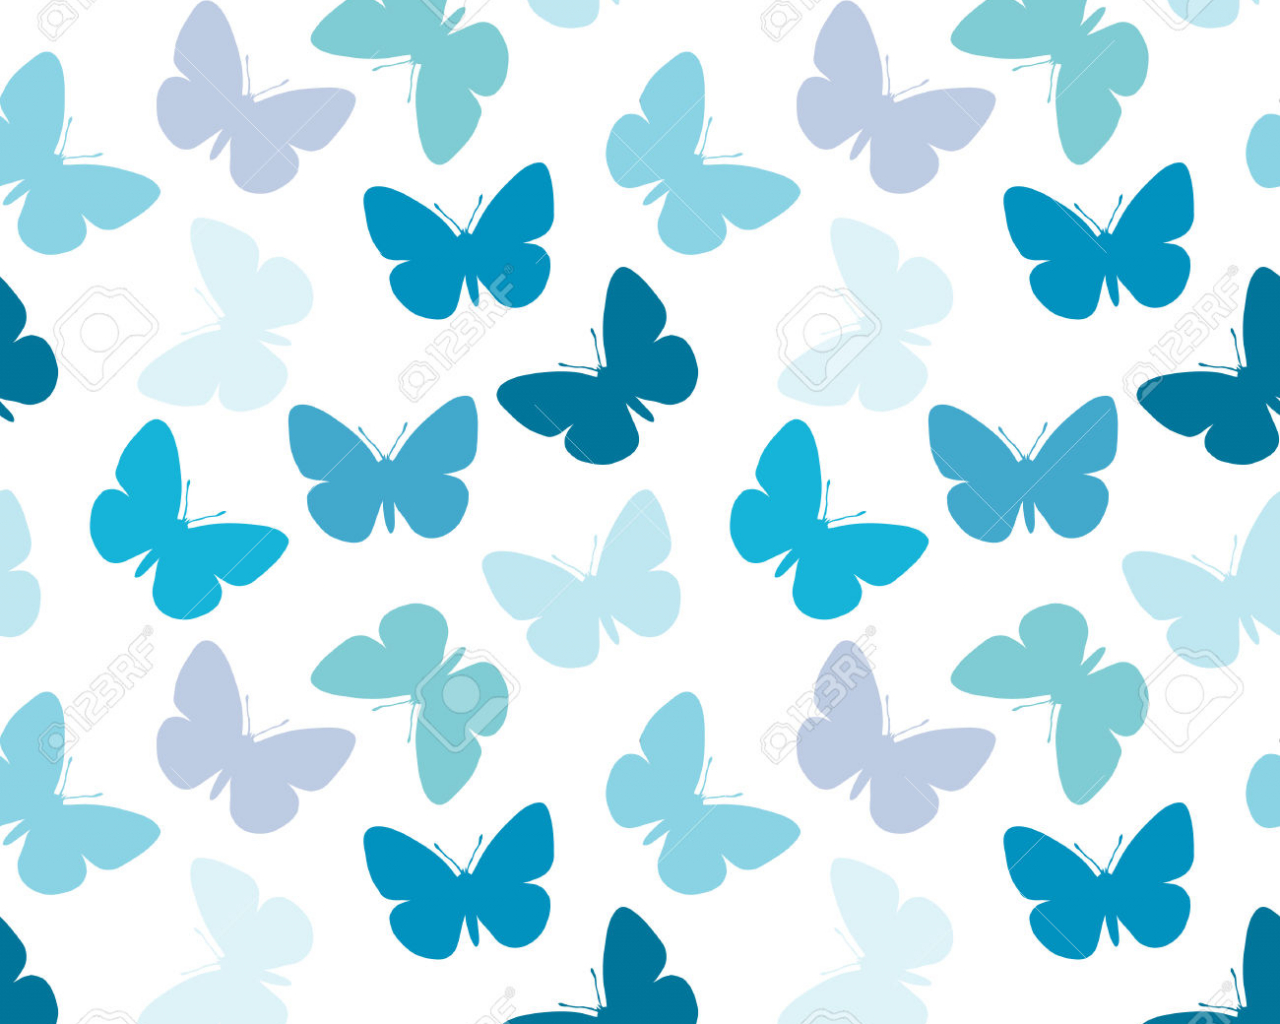 Free download Butterfly HD Wallpapers Backgrounds ...